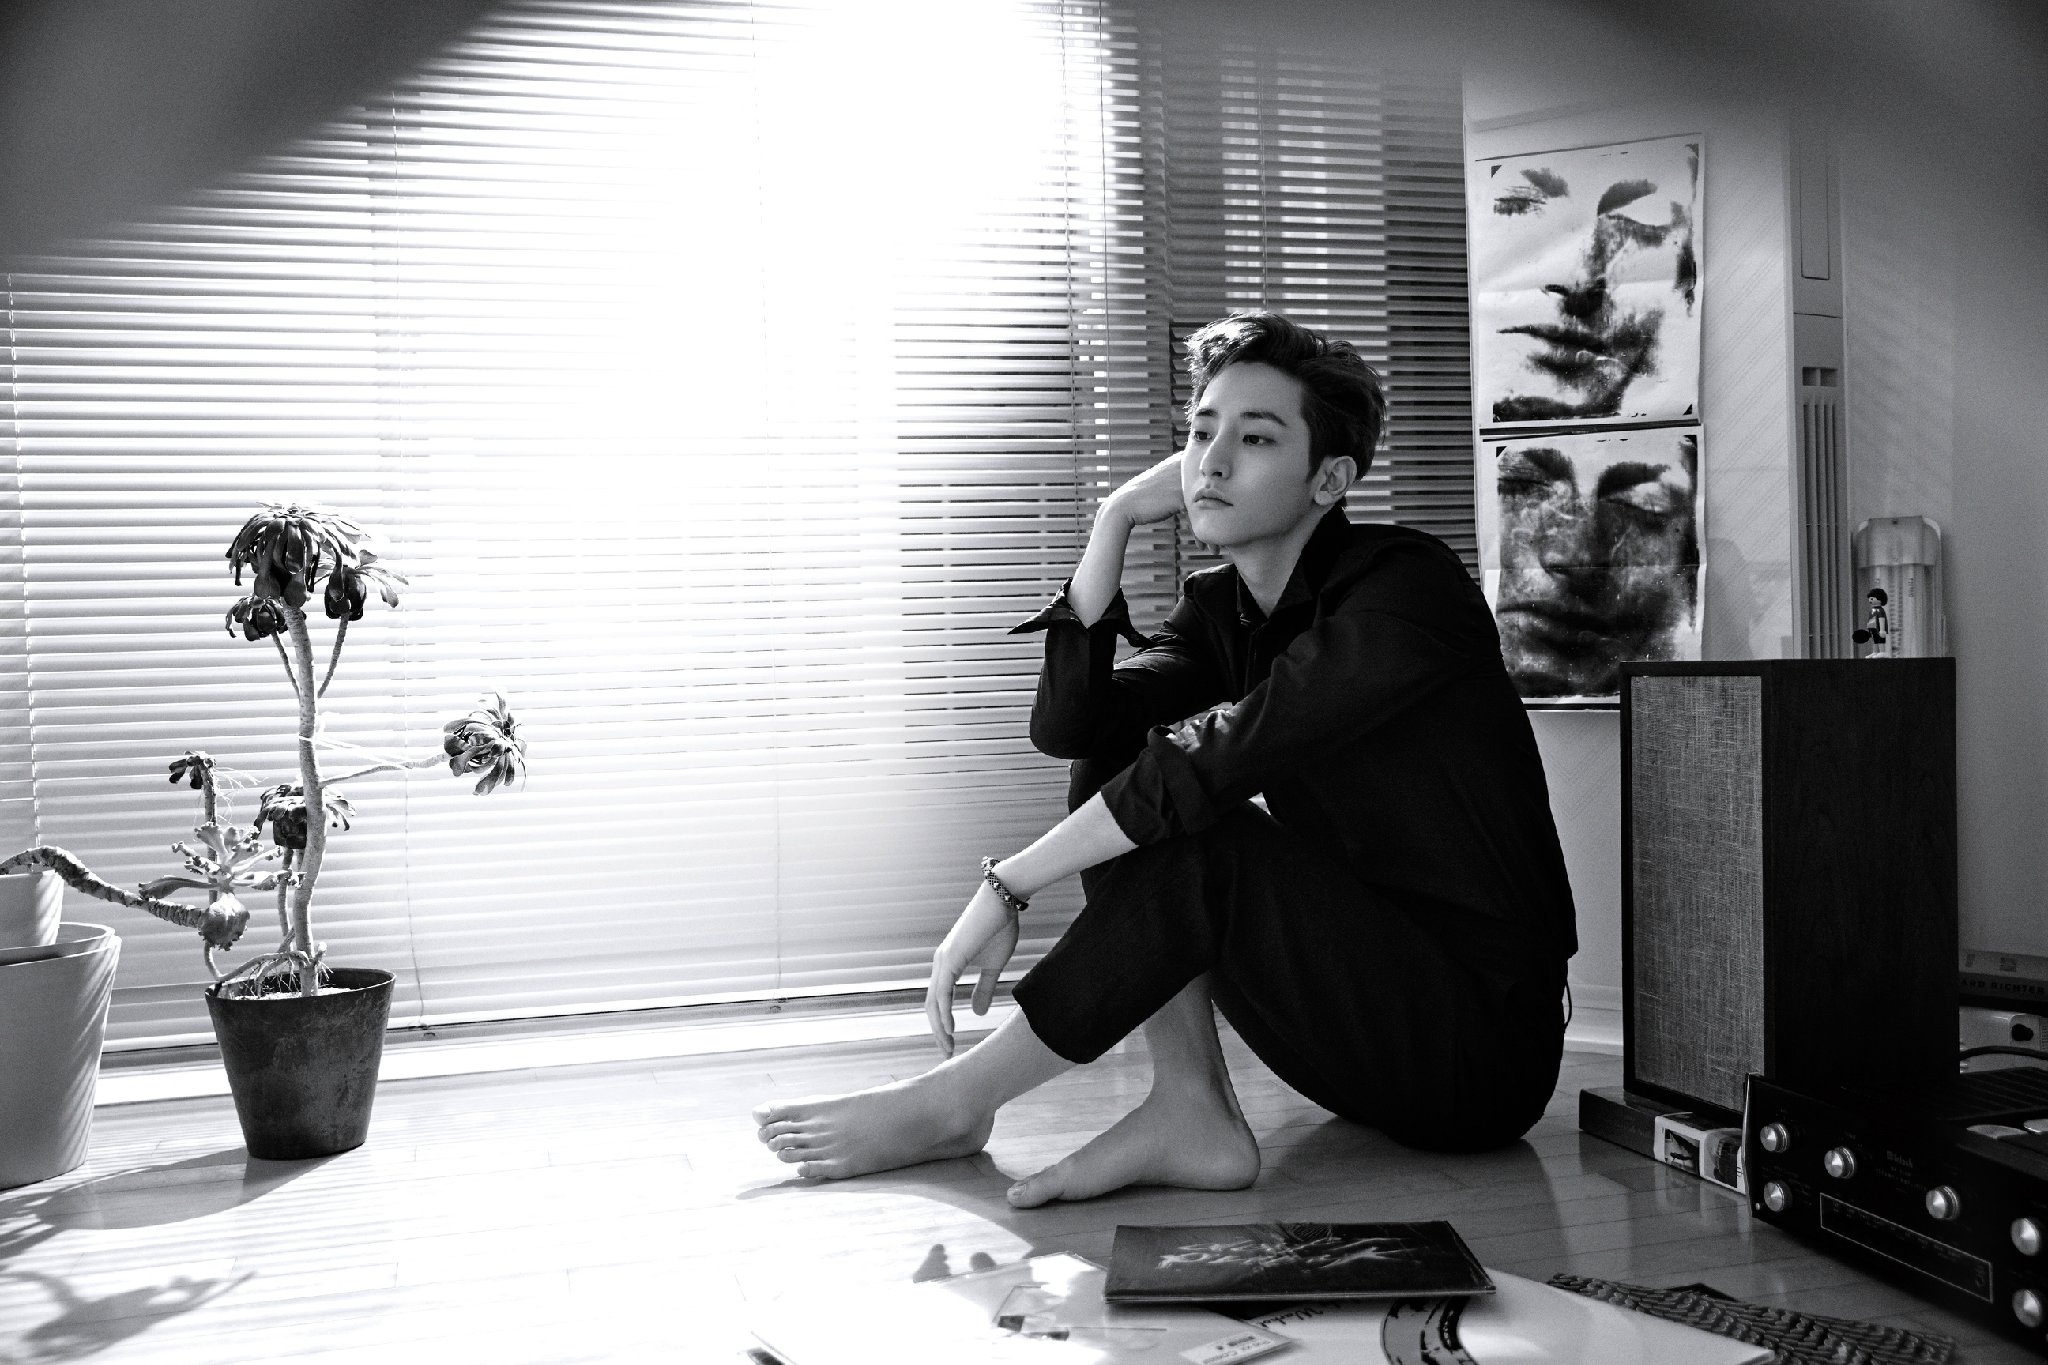 MARIE CLAIRE by SOOHYUK LEE